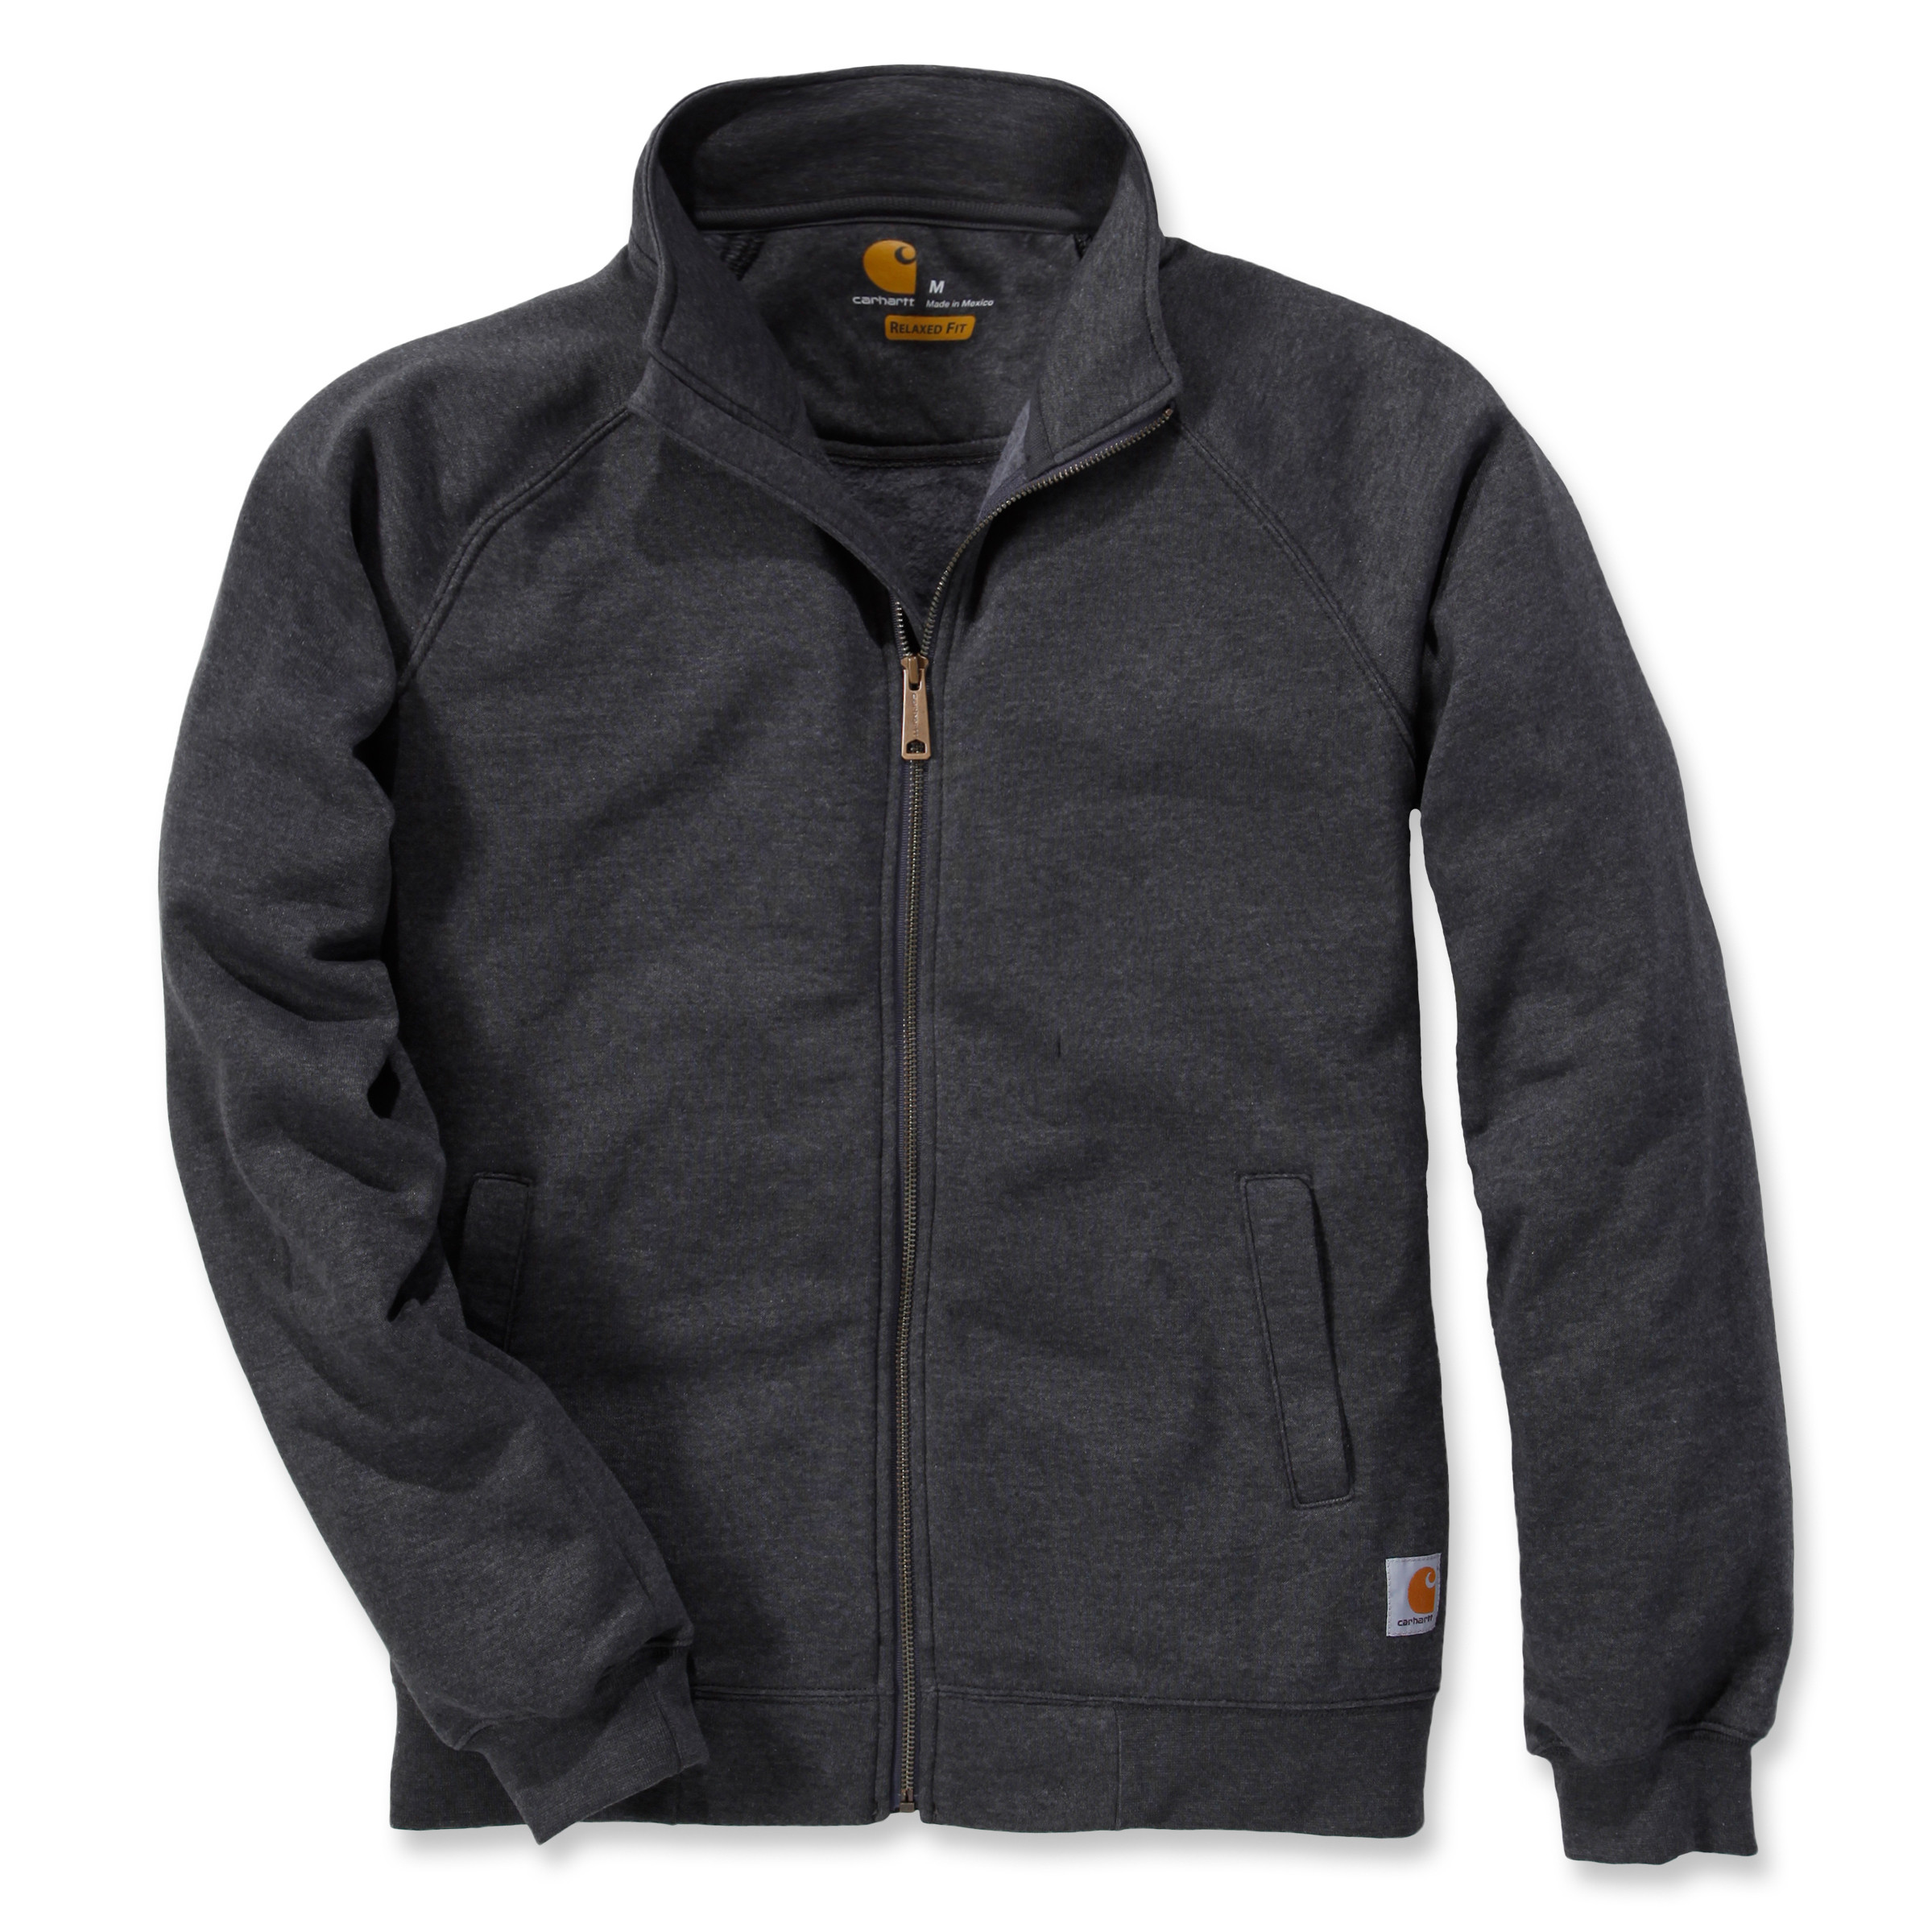 Свитшот на молнии Carhartt Midweight Mock Neck Zip Sweatshirt - K350 (Carbon Heather, L)